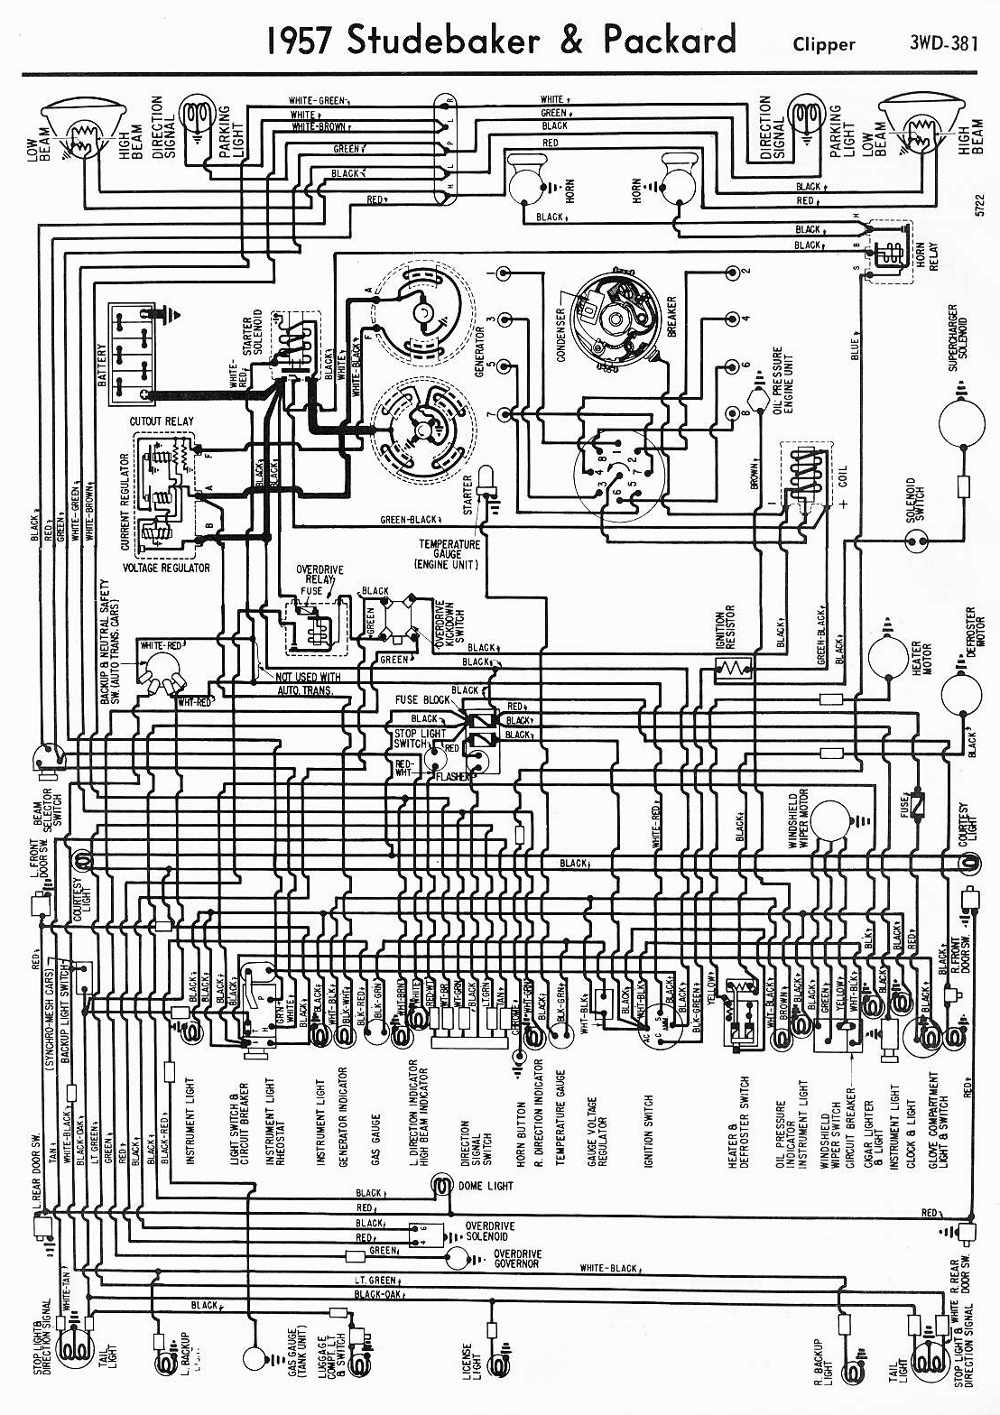 medium resolution of 1948 packard wiring diagram wiring diagram pictures u2022 rh mapavick co uk 1959 studebaker pickup wiring